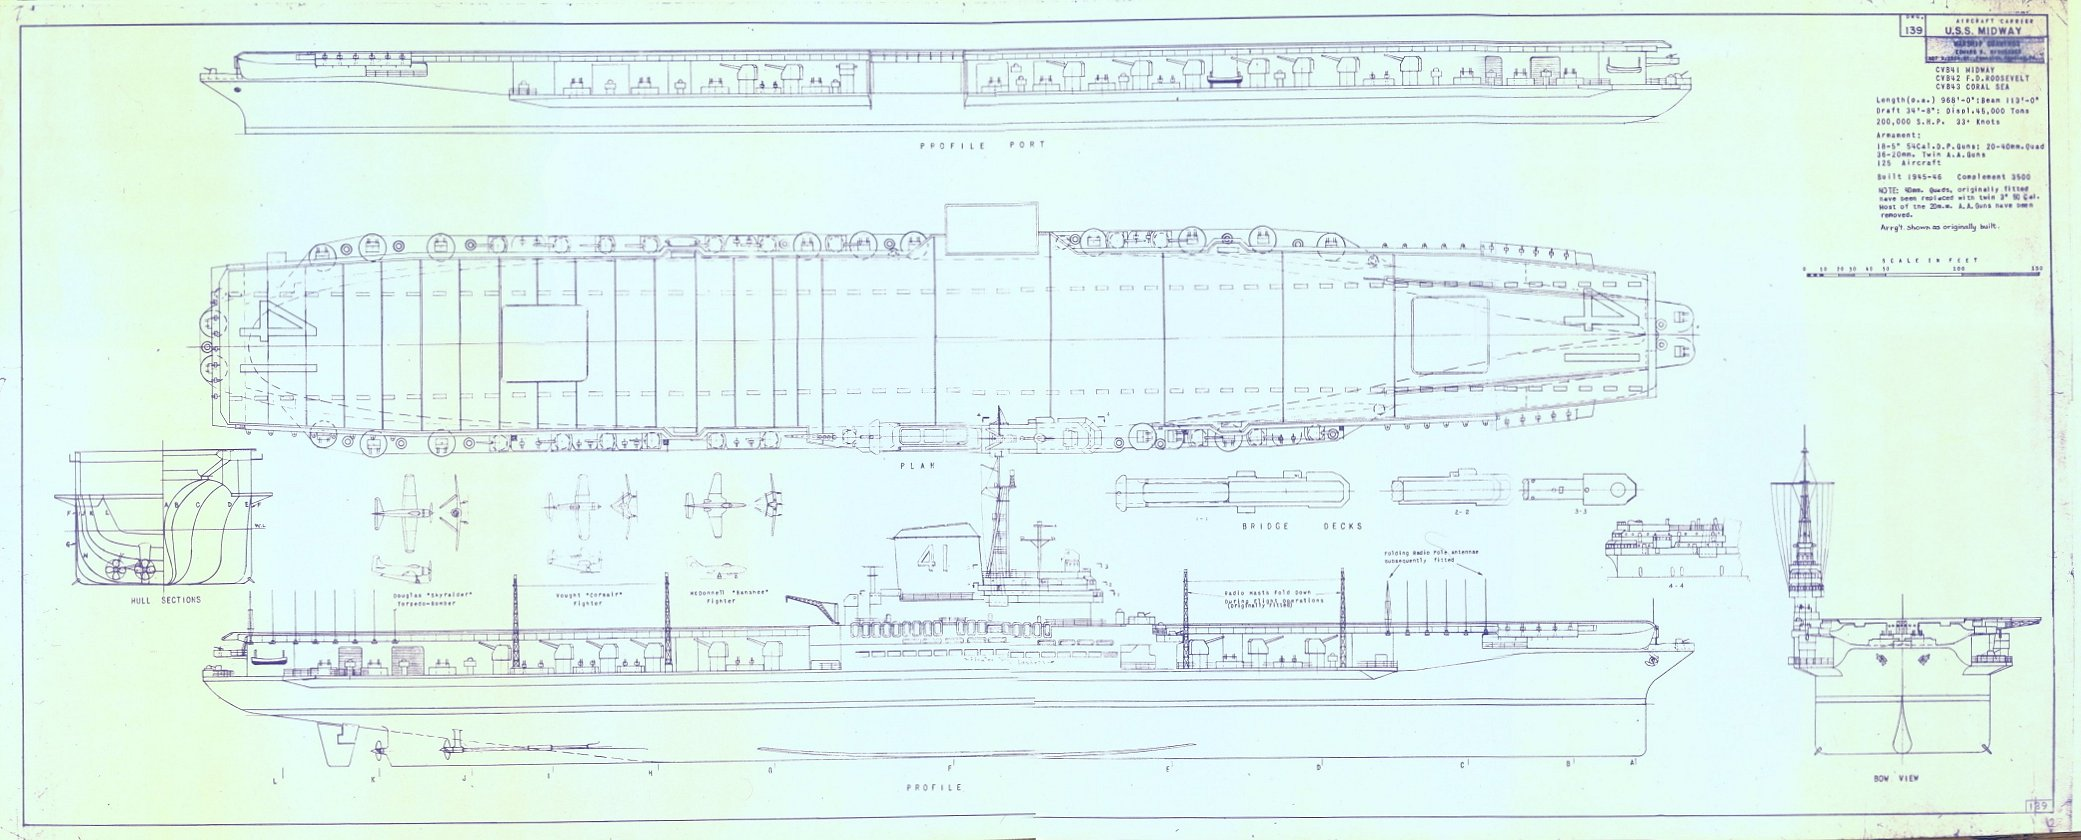 Cruise Ship Blueprints : Wing commander cic article